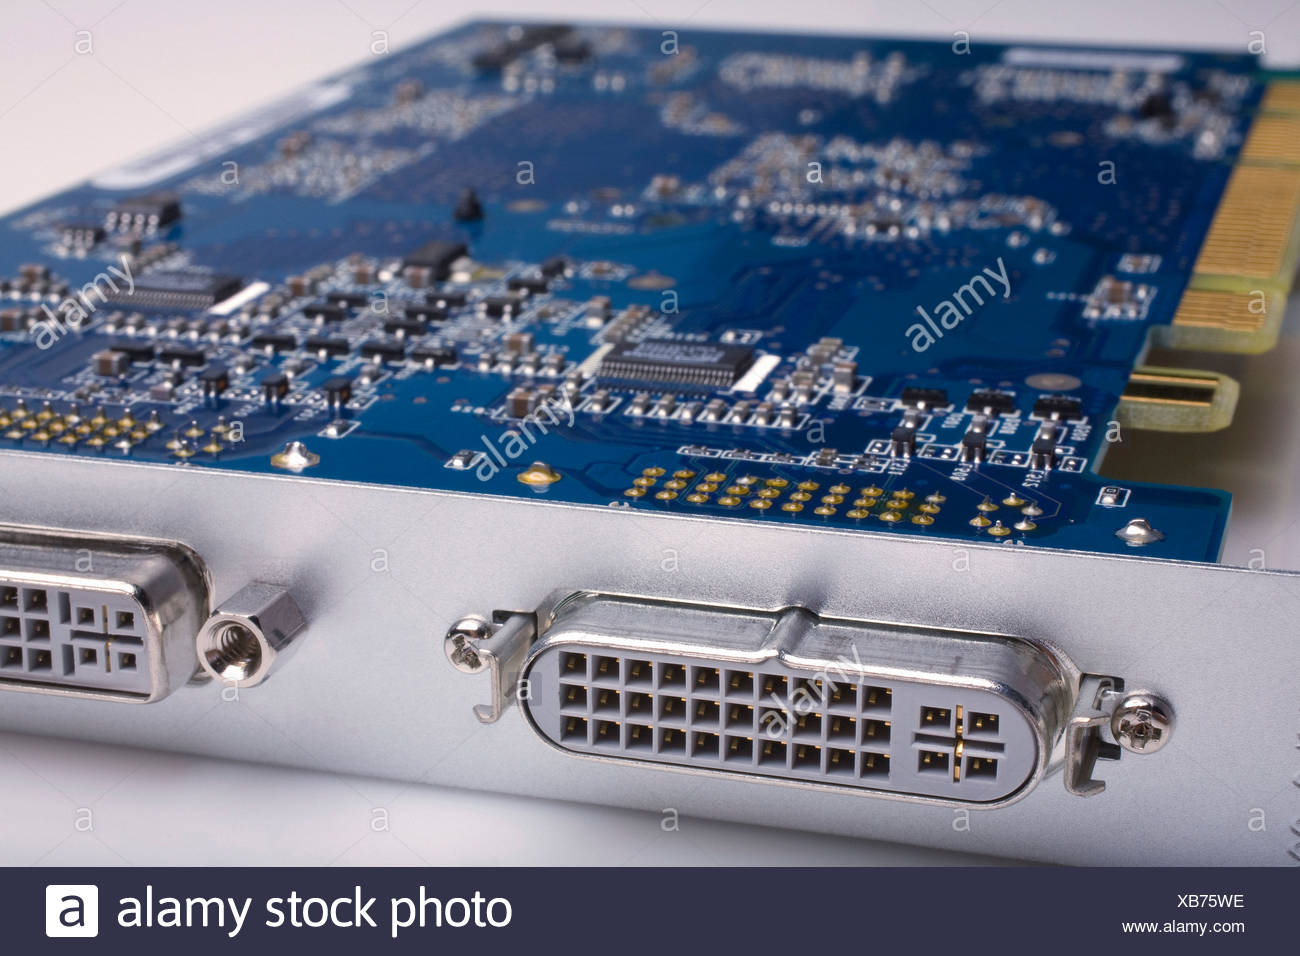 Computer Circuit Board Stock Photo 282285402 Alamy Assembly Buy Electronic Circuits Boardcircuit